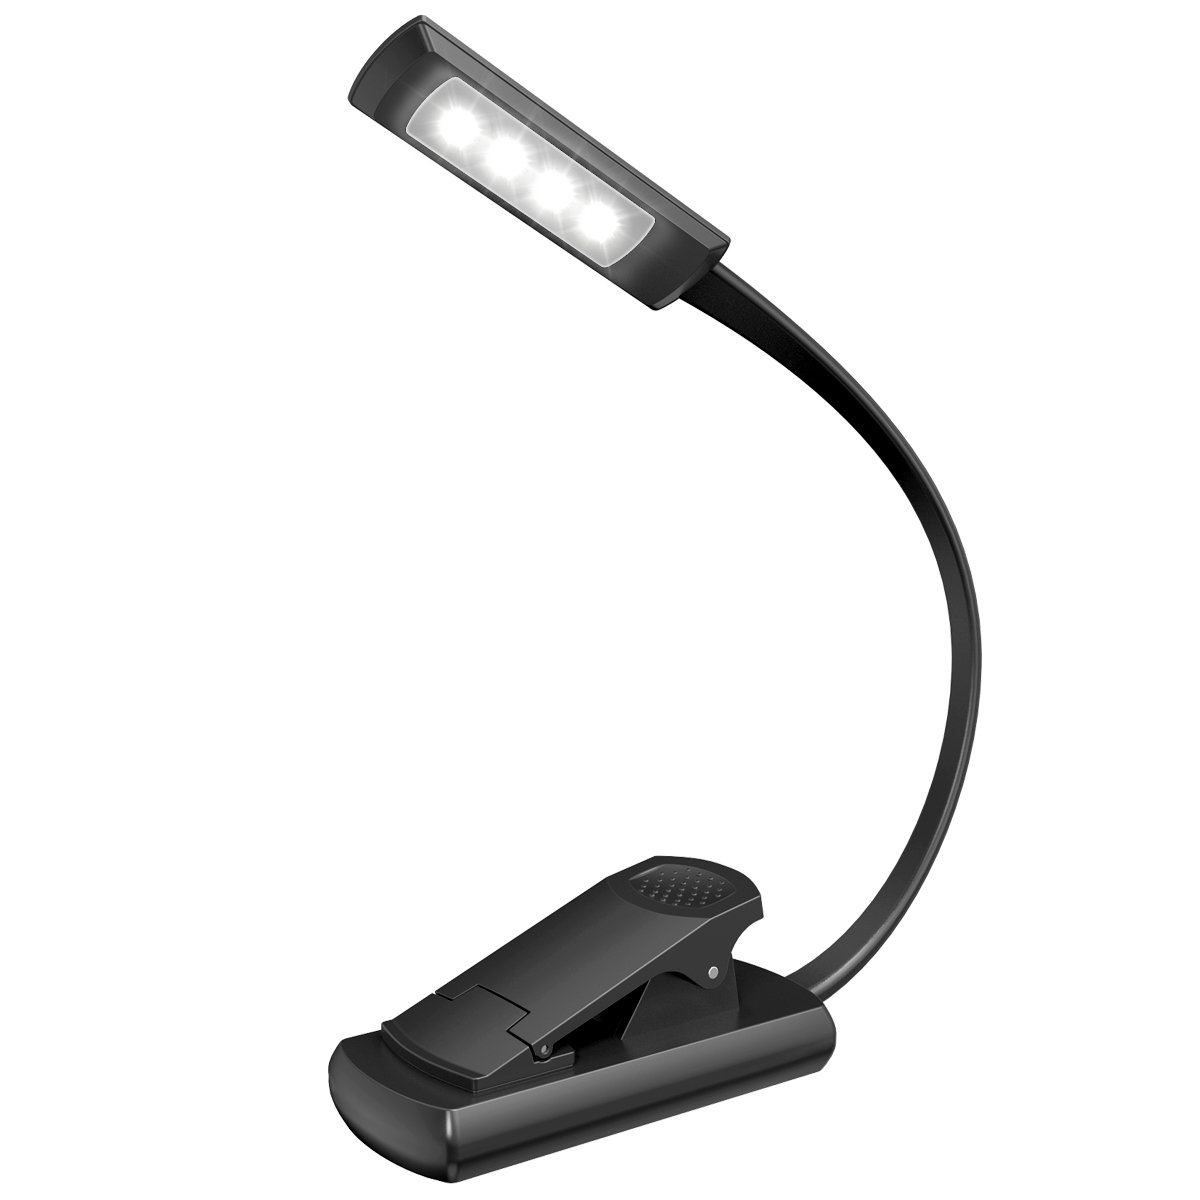 Book Light, Oria Reading Light, Clip Light with 4 LED 2 Brightness Modes, Battery Operated Music Stand Light, Portable Reading Lamp with Flexible Neck Eye-car for Reading Book, Magazine, Kindle in Bed